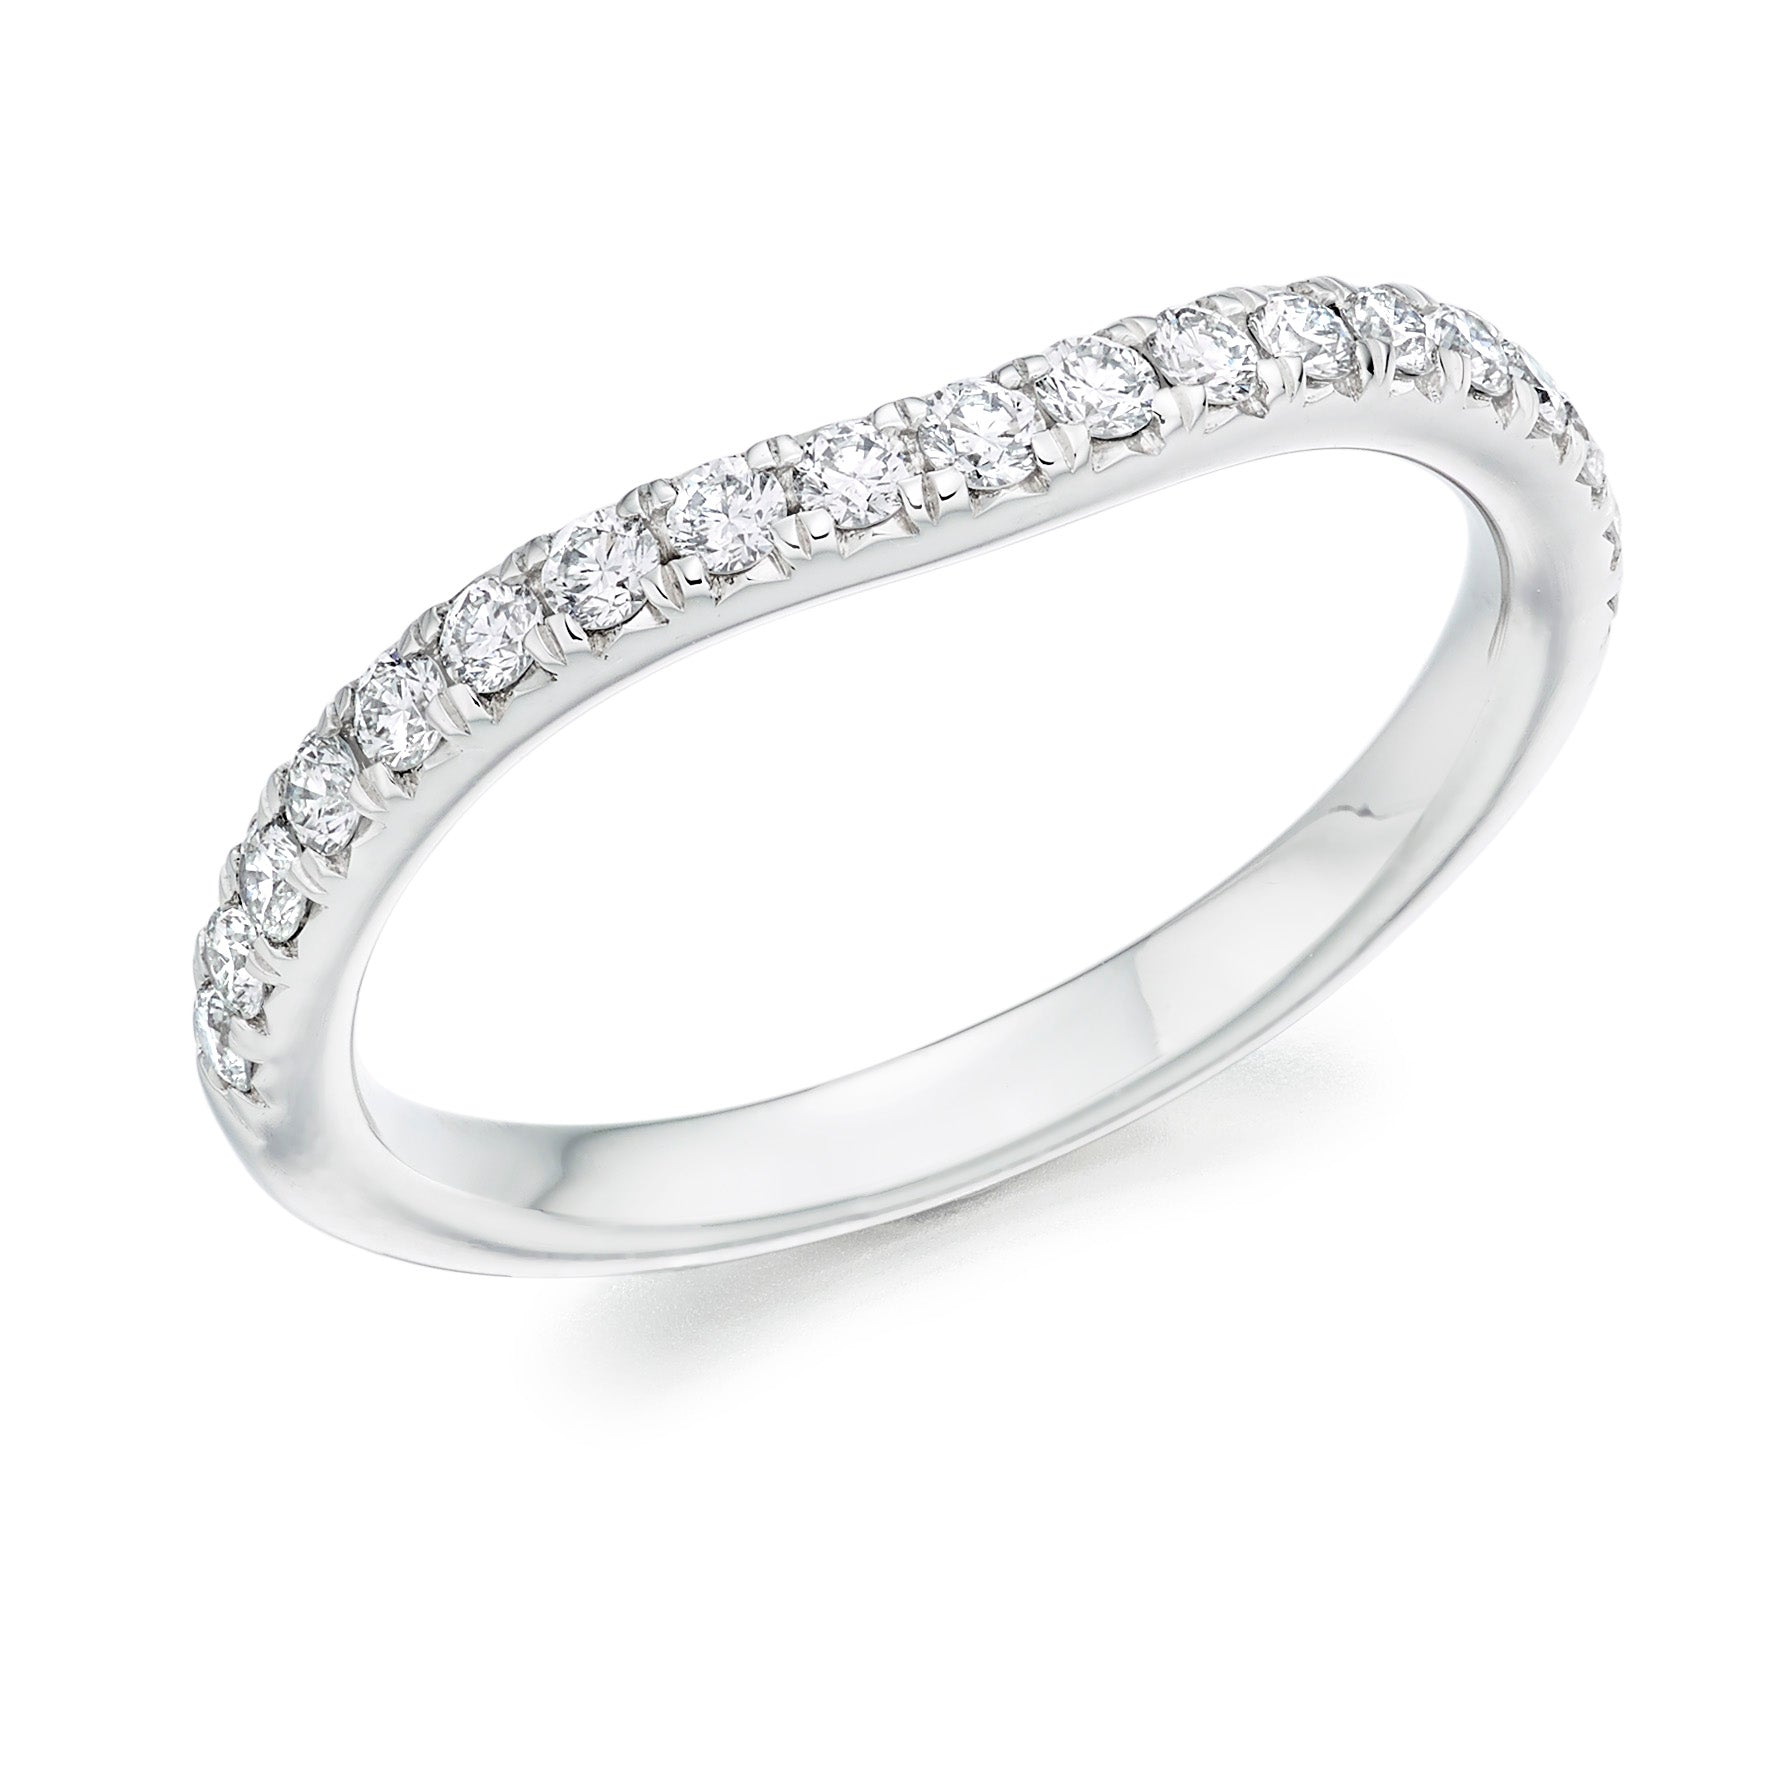 18ct White Gold 0.35ct Round Brilliant Cut Diamonds Curved Wedding Ring